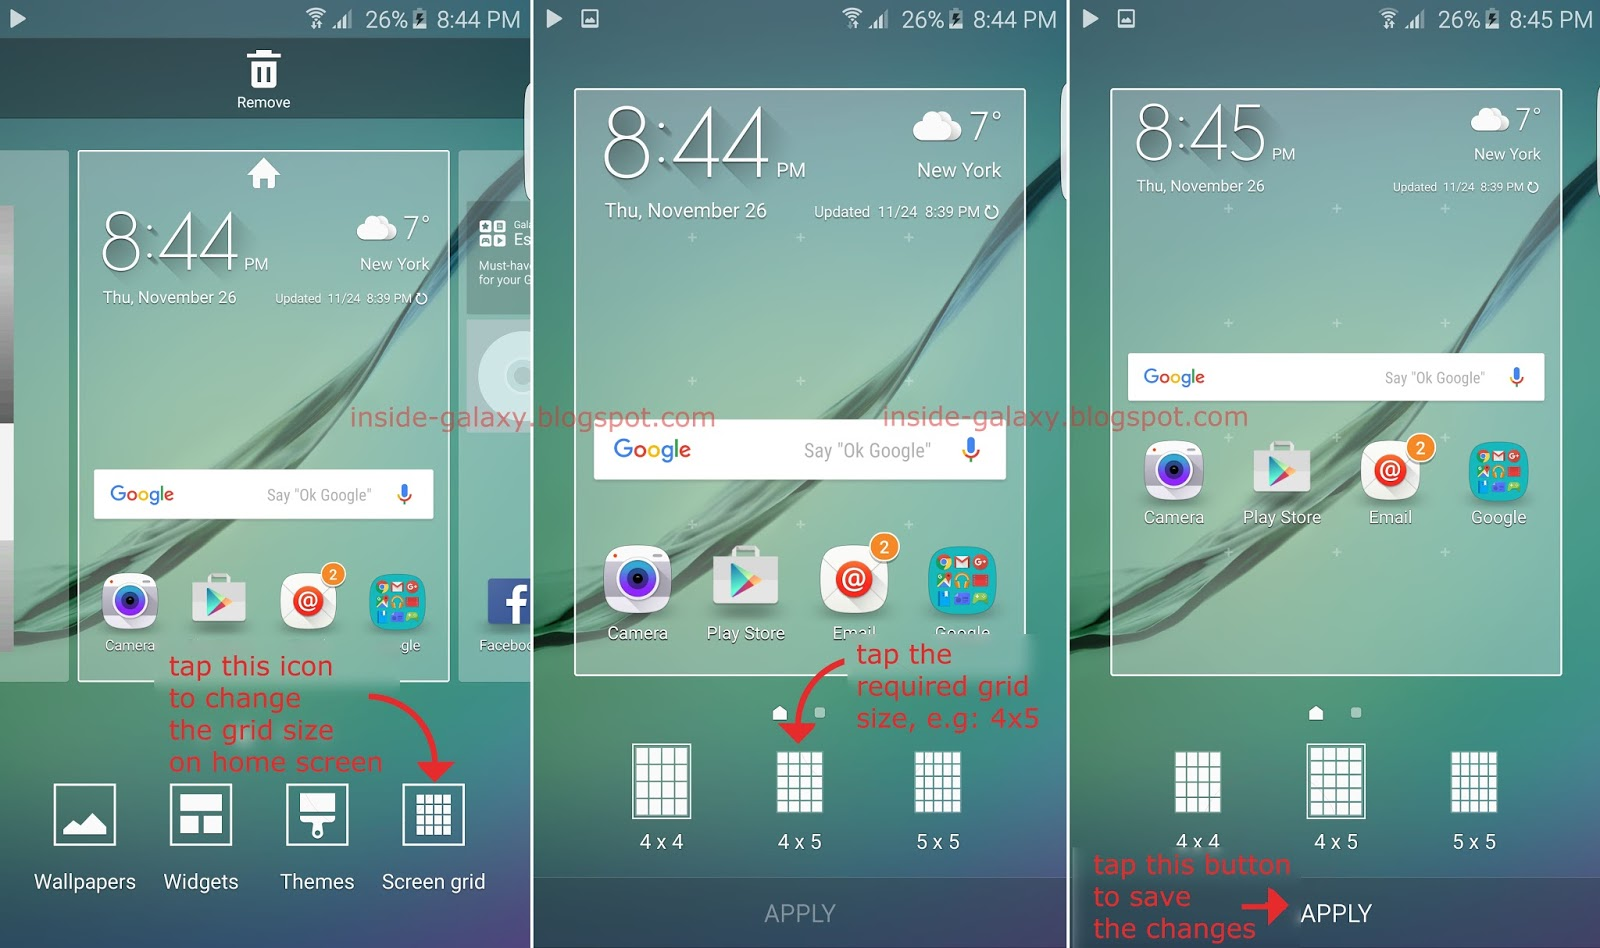 Samsung Galaxy S6 Edge: How to Change the Grid Size on Home Screen